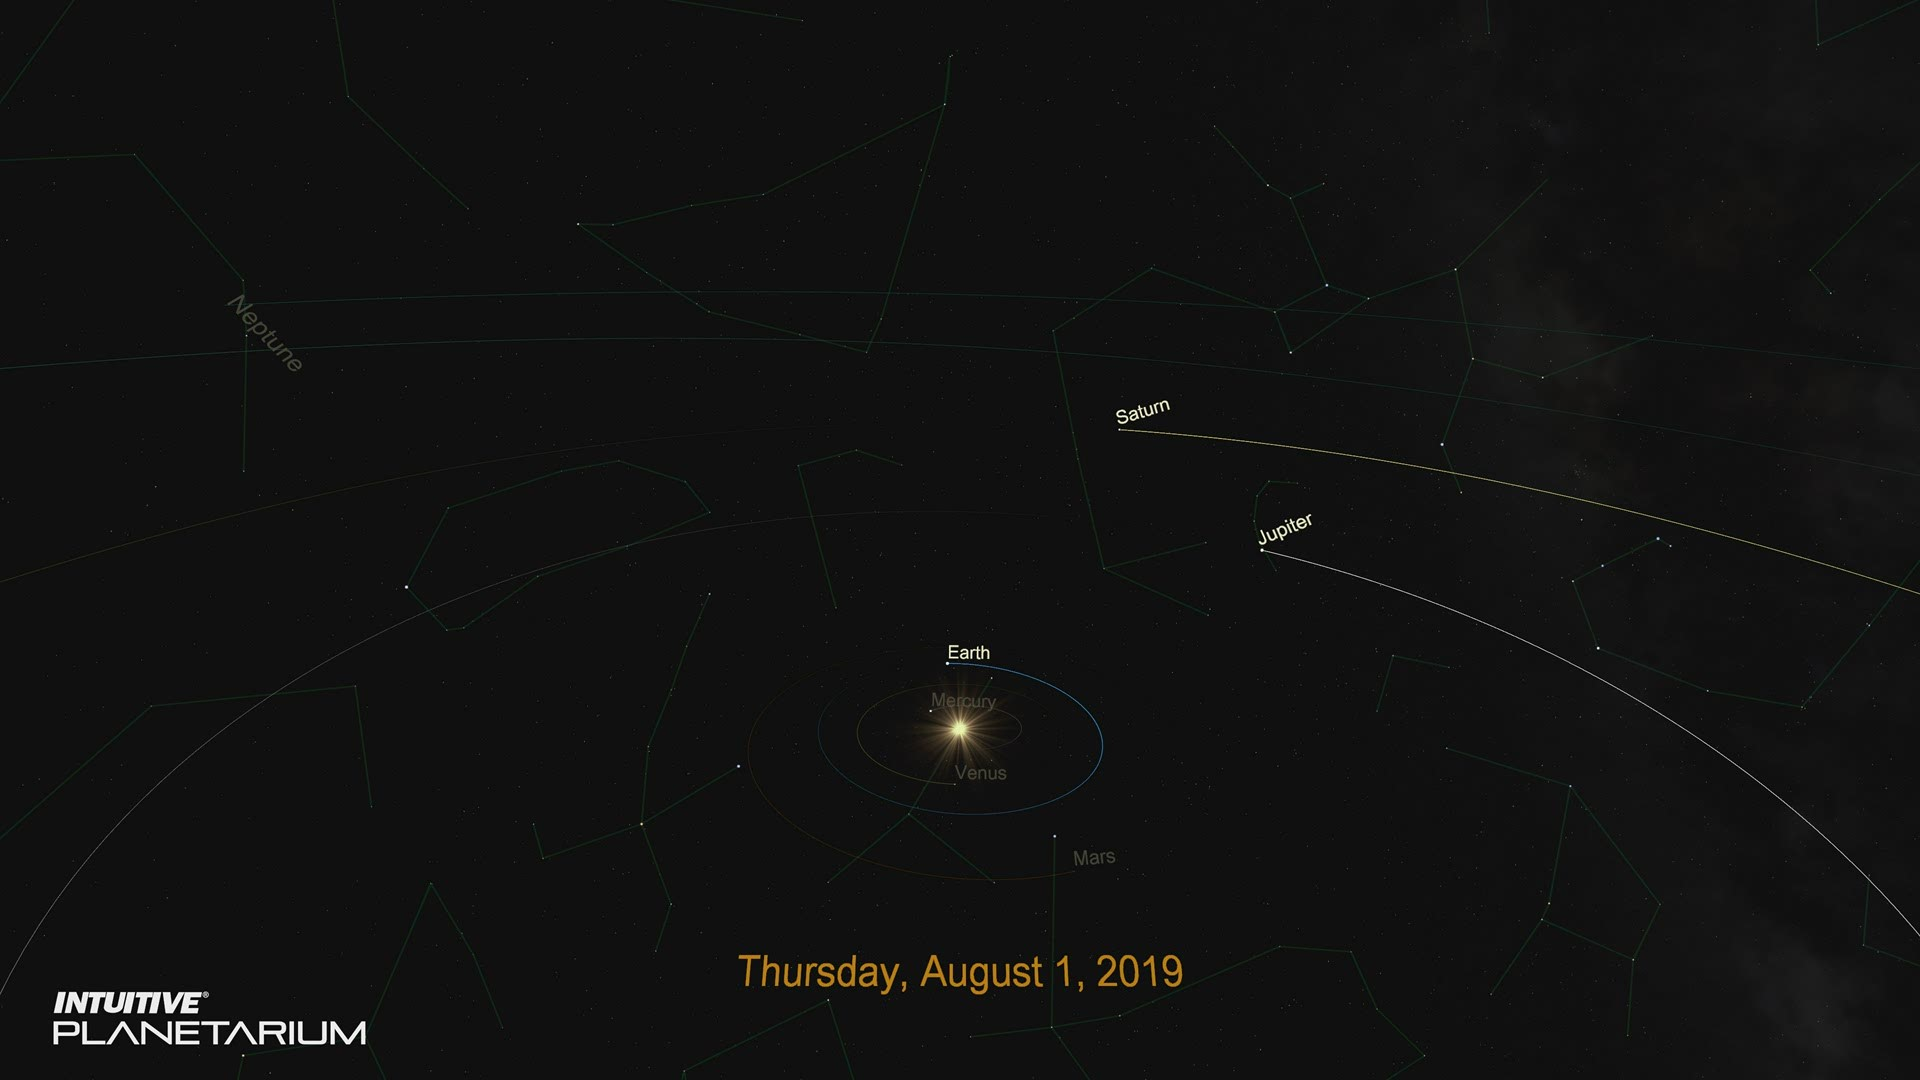 Christmas Comet 2021 Time Here S The Science Behind The Famed December 21 Christmas Star Wfmynews2 Com